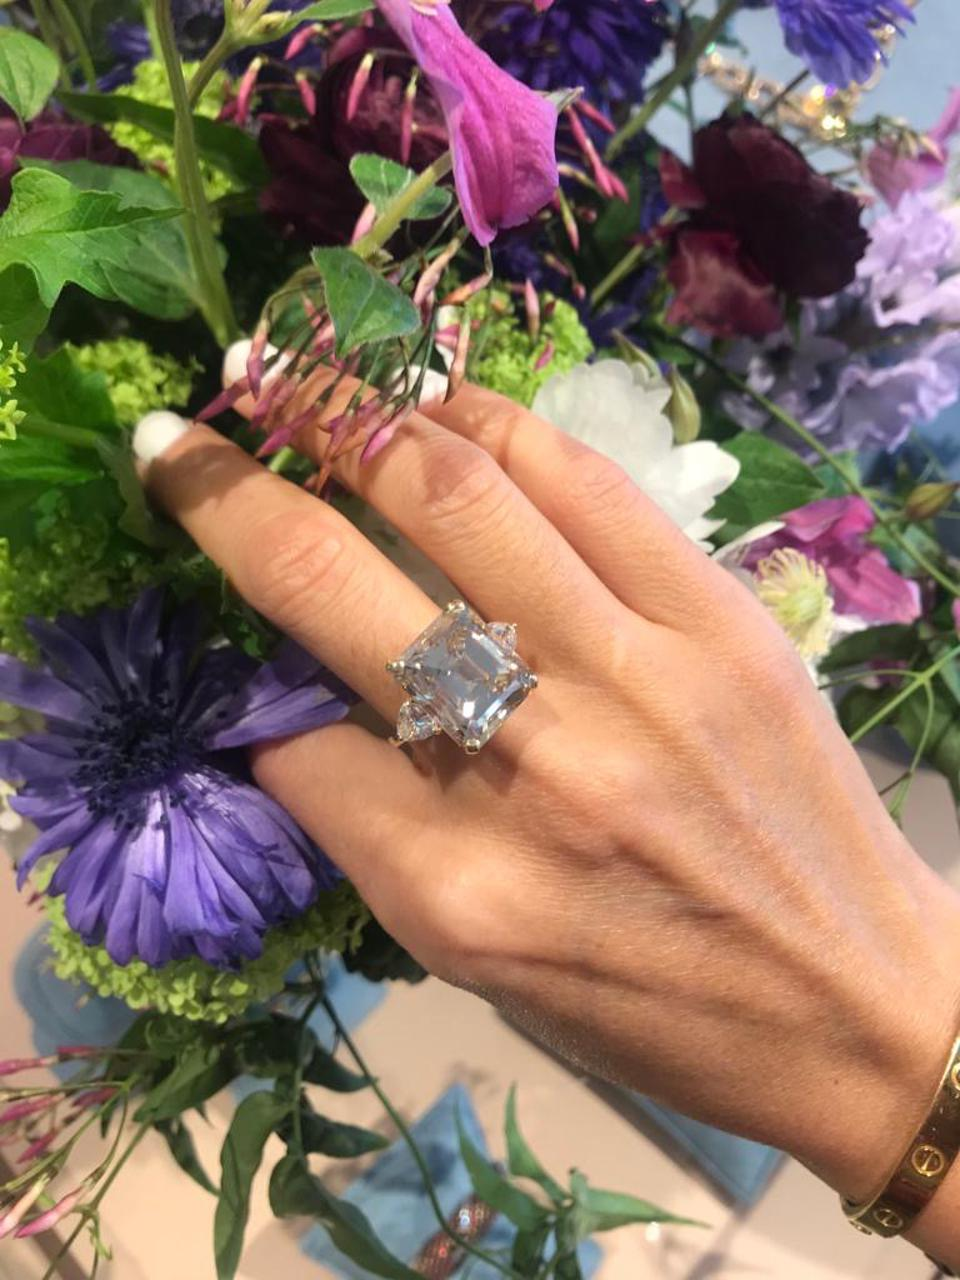 16.77 carat fancy light brown diamond ring available at Tiina Smith Jewelry Photo Credit: